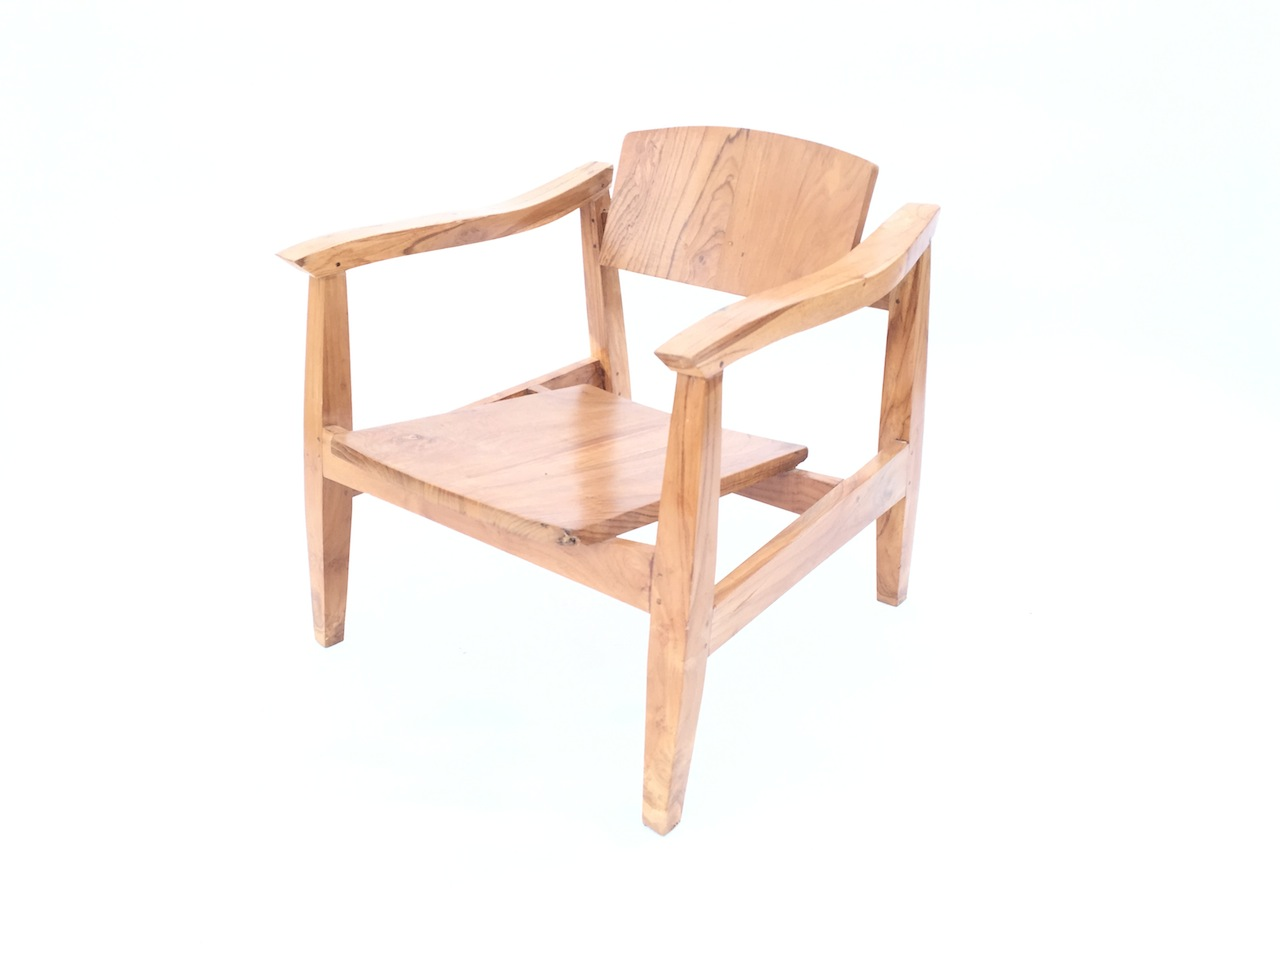 Summerland Chair